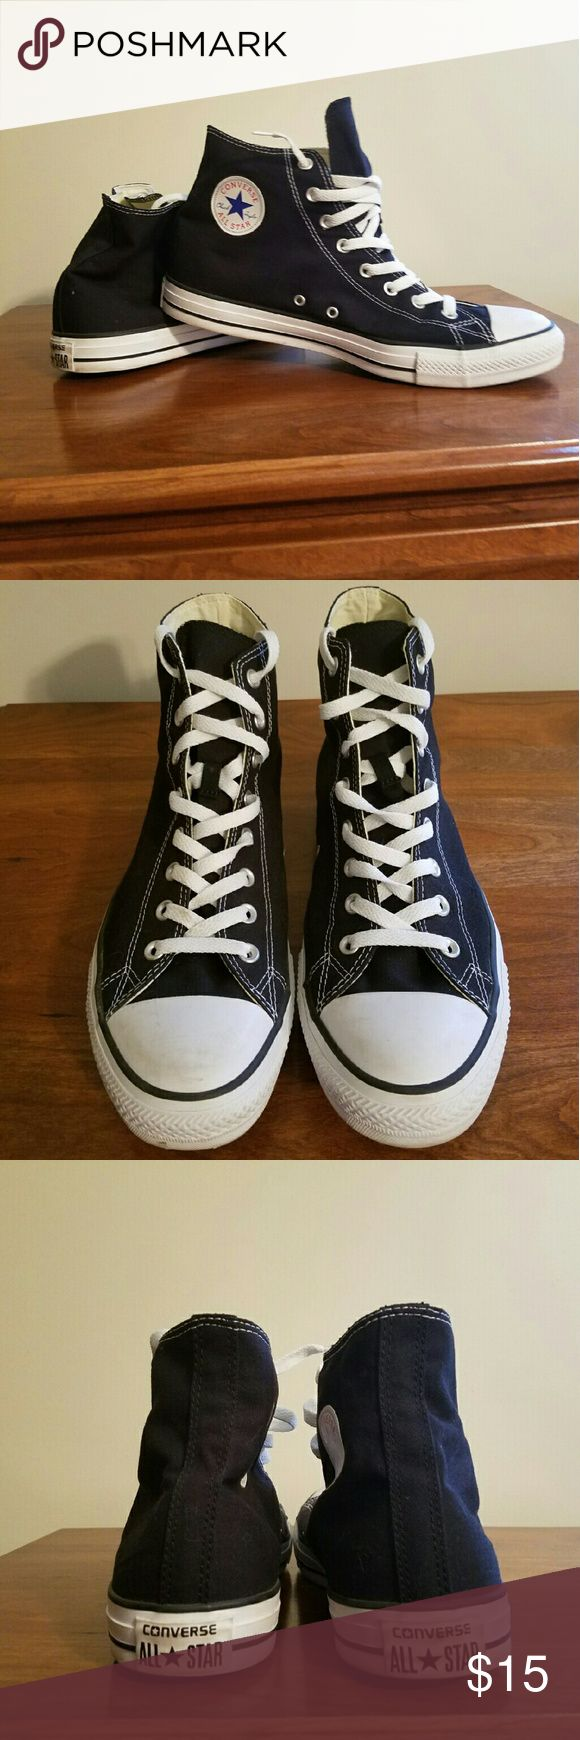 Allstar Converse Hightops Men's size 12 Allstar Converse shoes worn a handful of times . Converse Shoes Sneakers